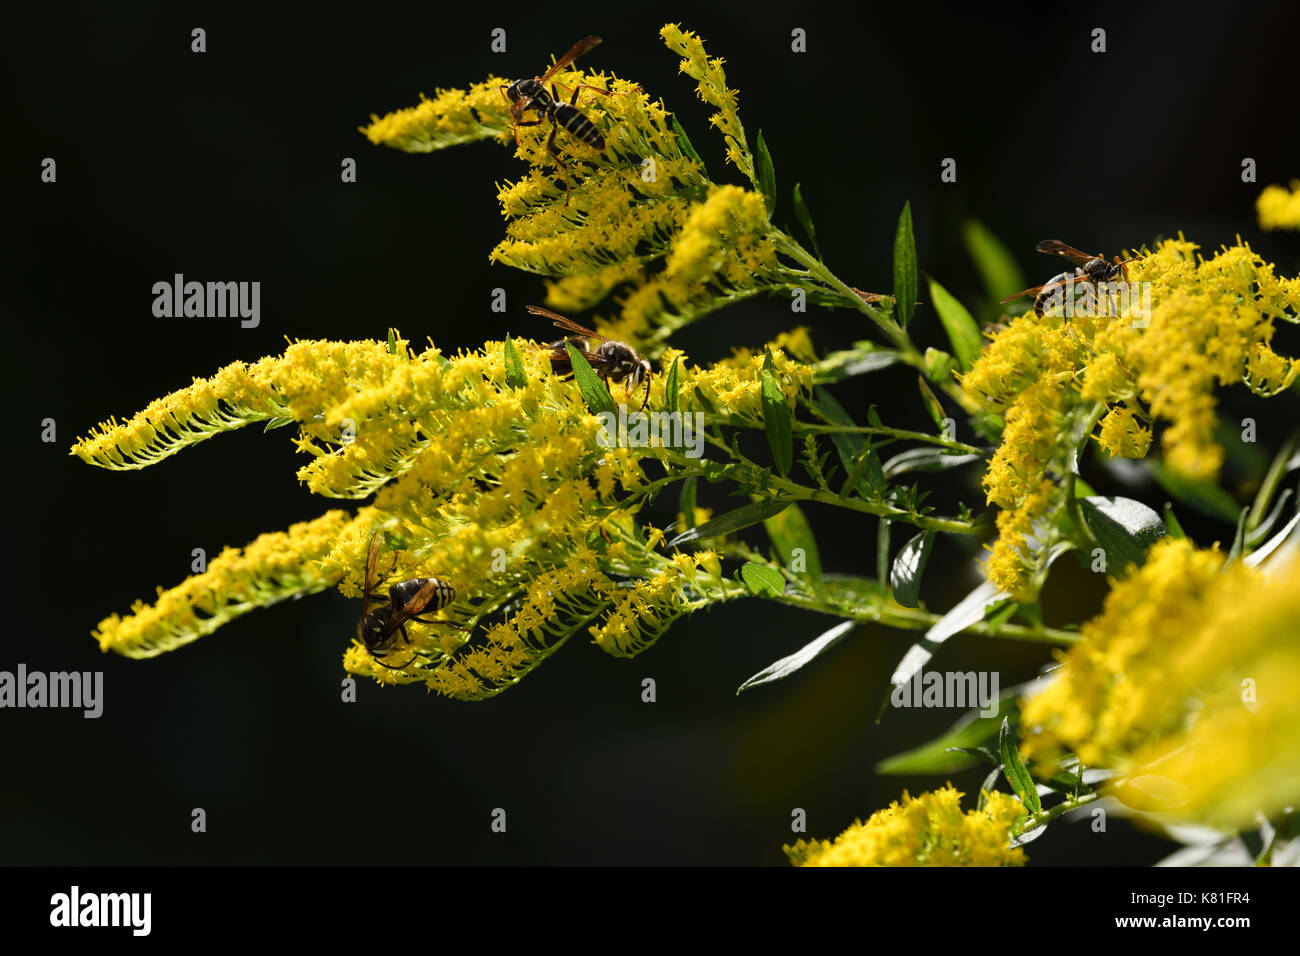 Two Varieties Of Paper Wasps Pollinating The Yellow Flowers Of A